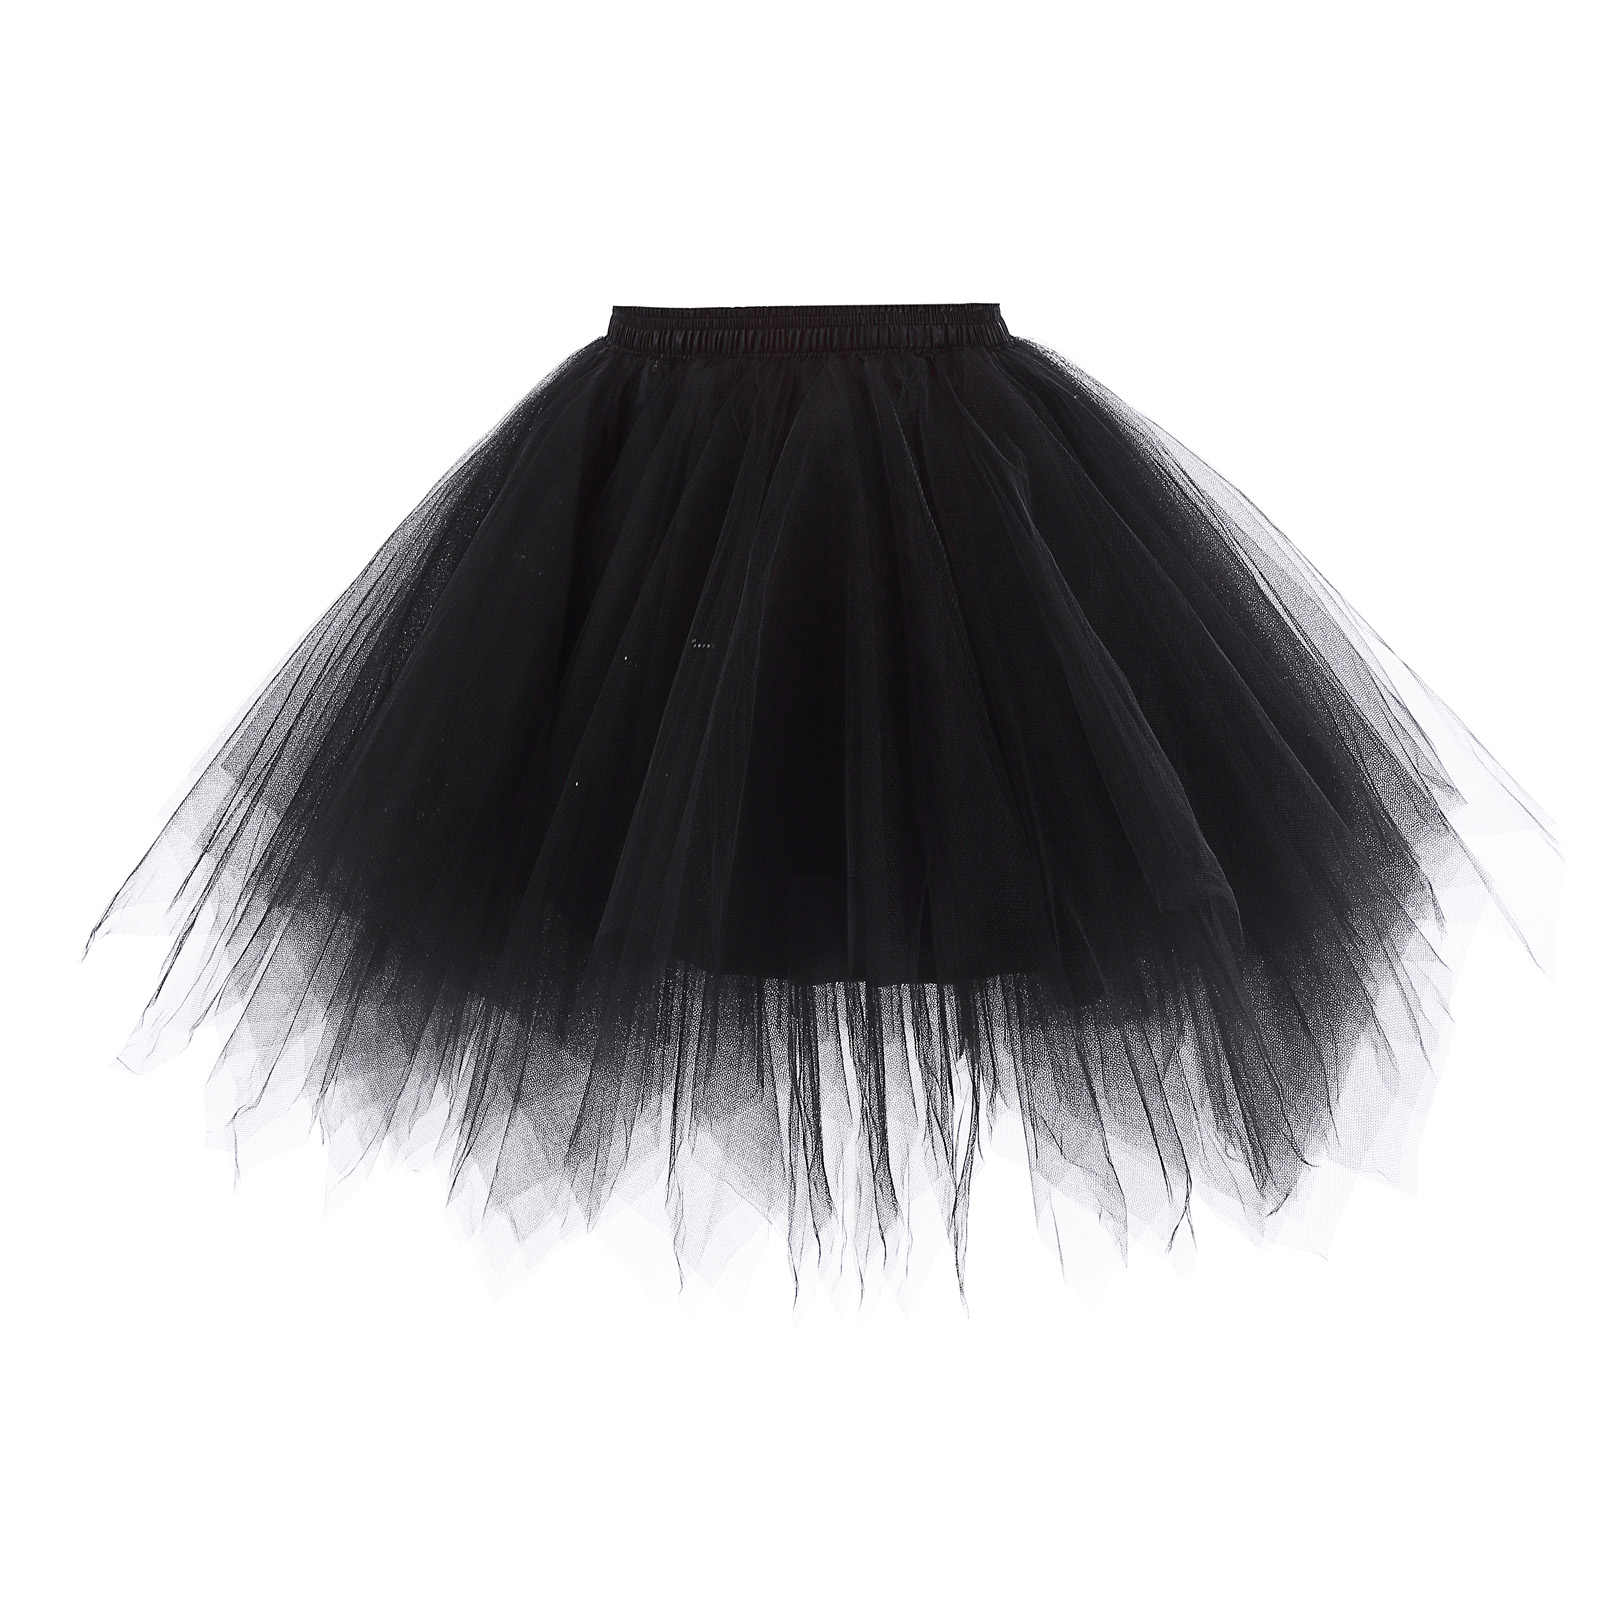 5a65025fc stock Women white black red Soft Tulle Netting Retro skirt Vintage  Crinoline Petticoat Unde short tutu